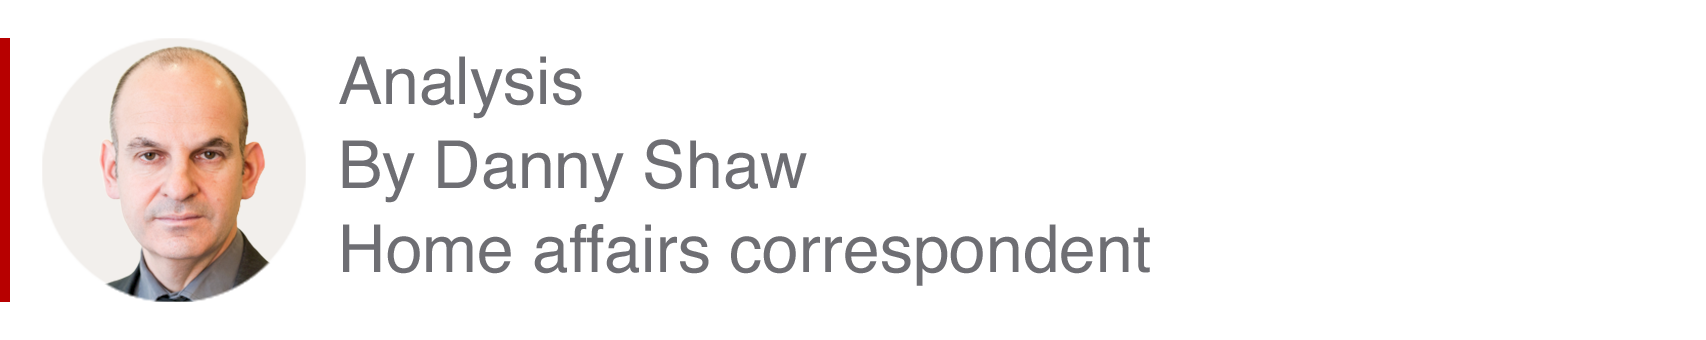 Analysis box by Danny Shaw, home affairs correspondent